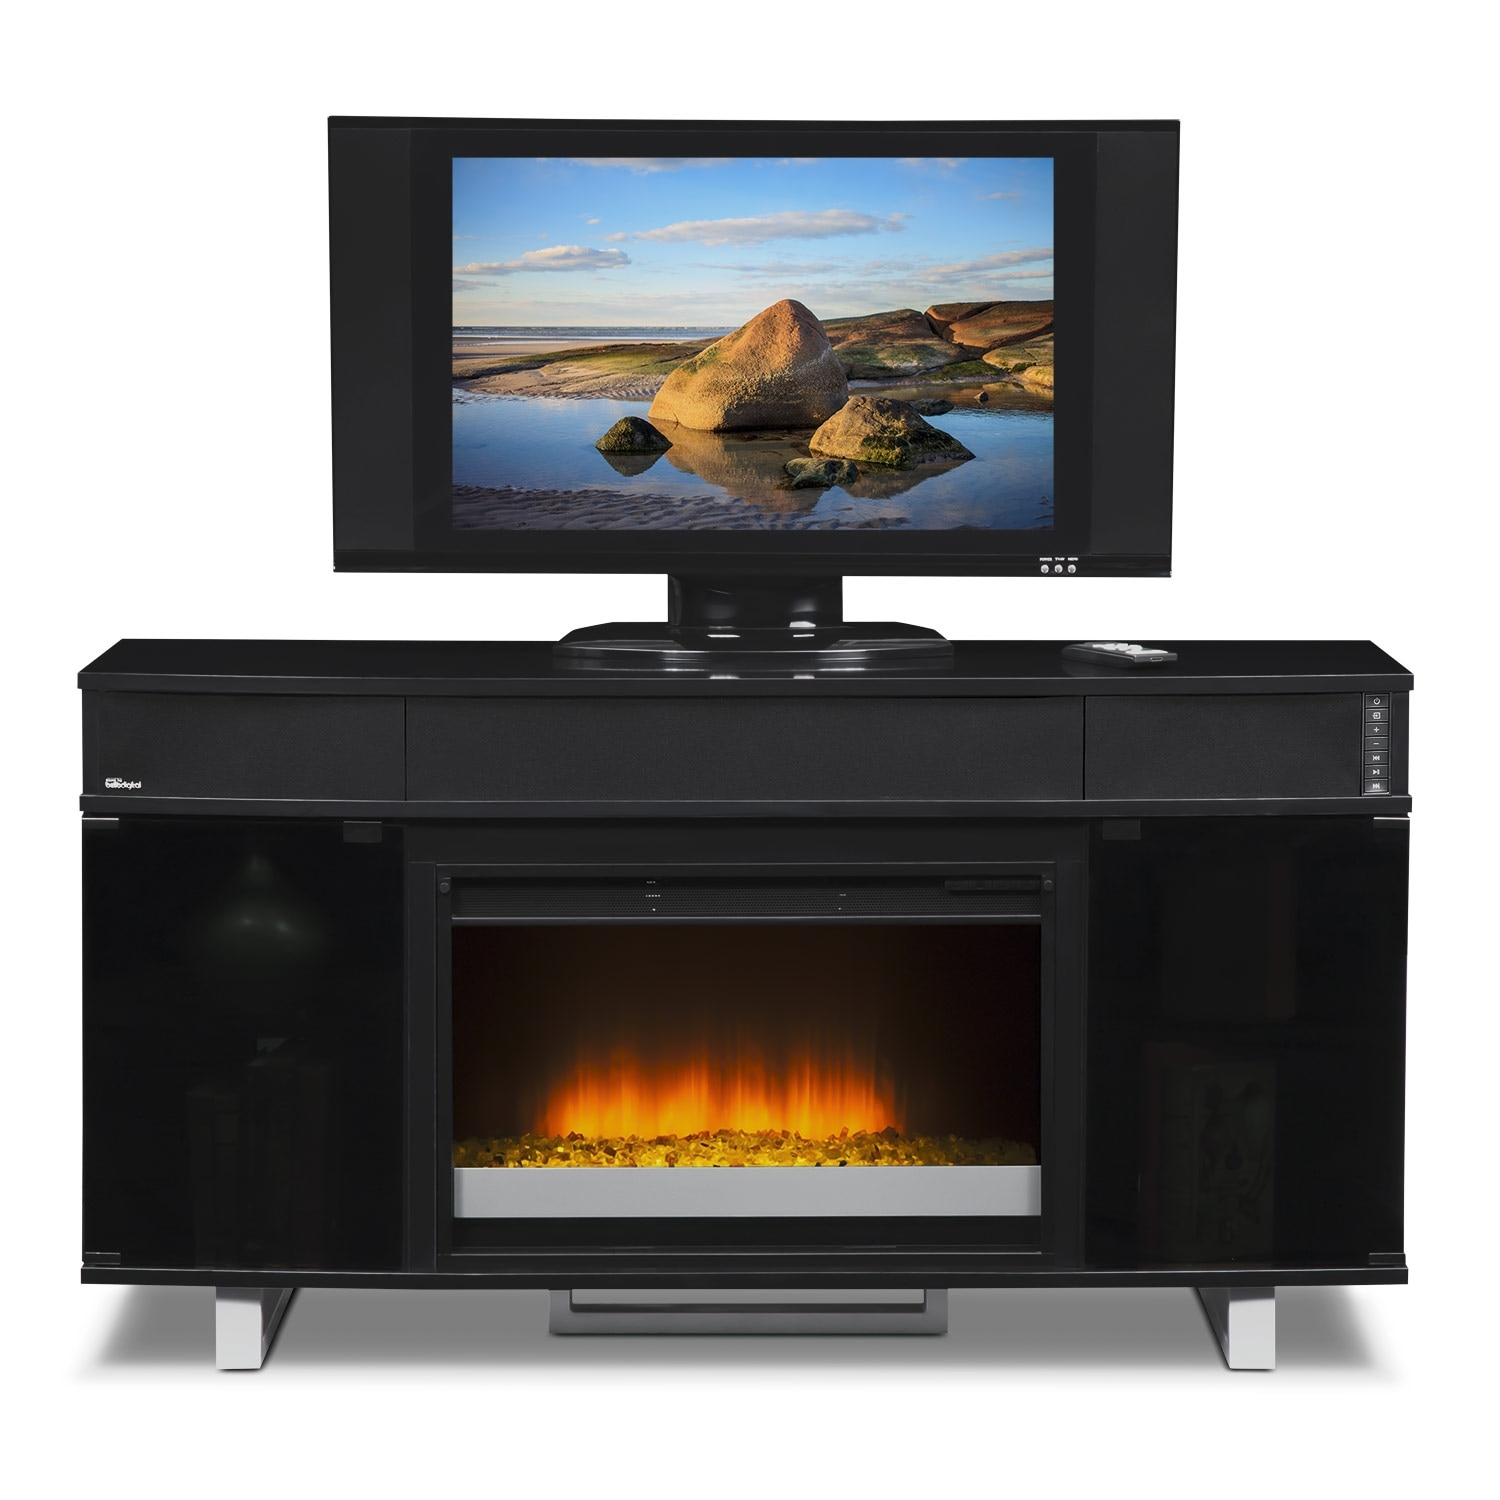 Pacer 56 Contemporary Fireplace TV Stand with Sound Bar Black